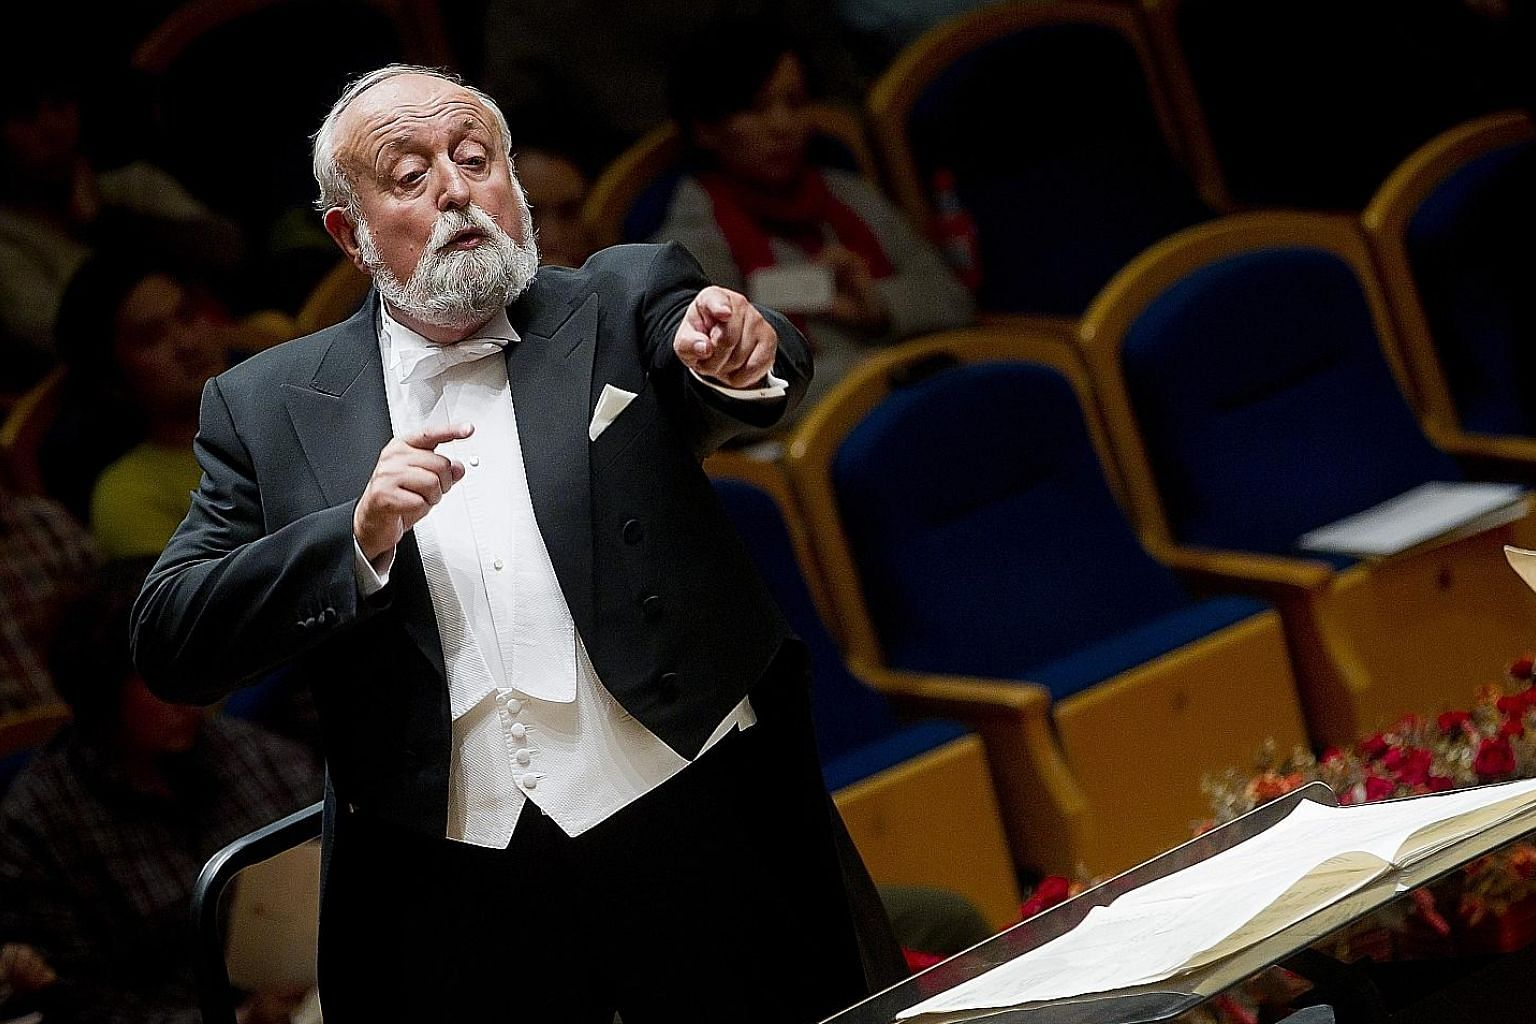 Polish composer Krzysztof Penderecki conducting China's National Symphonic Orchestra in Beijing in 2011.